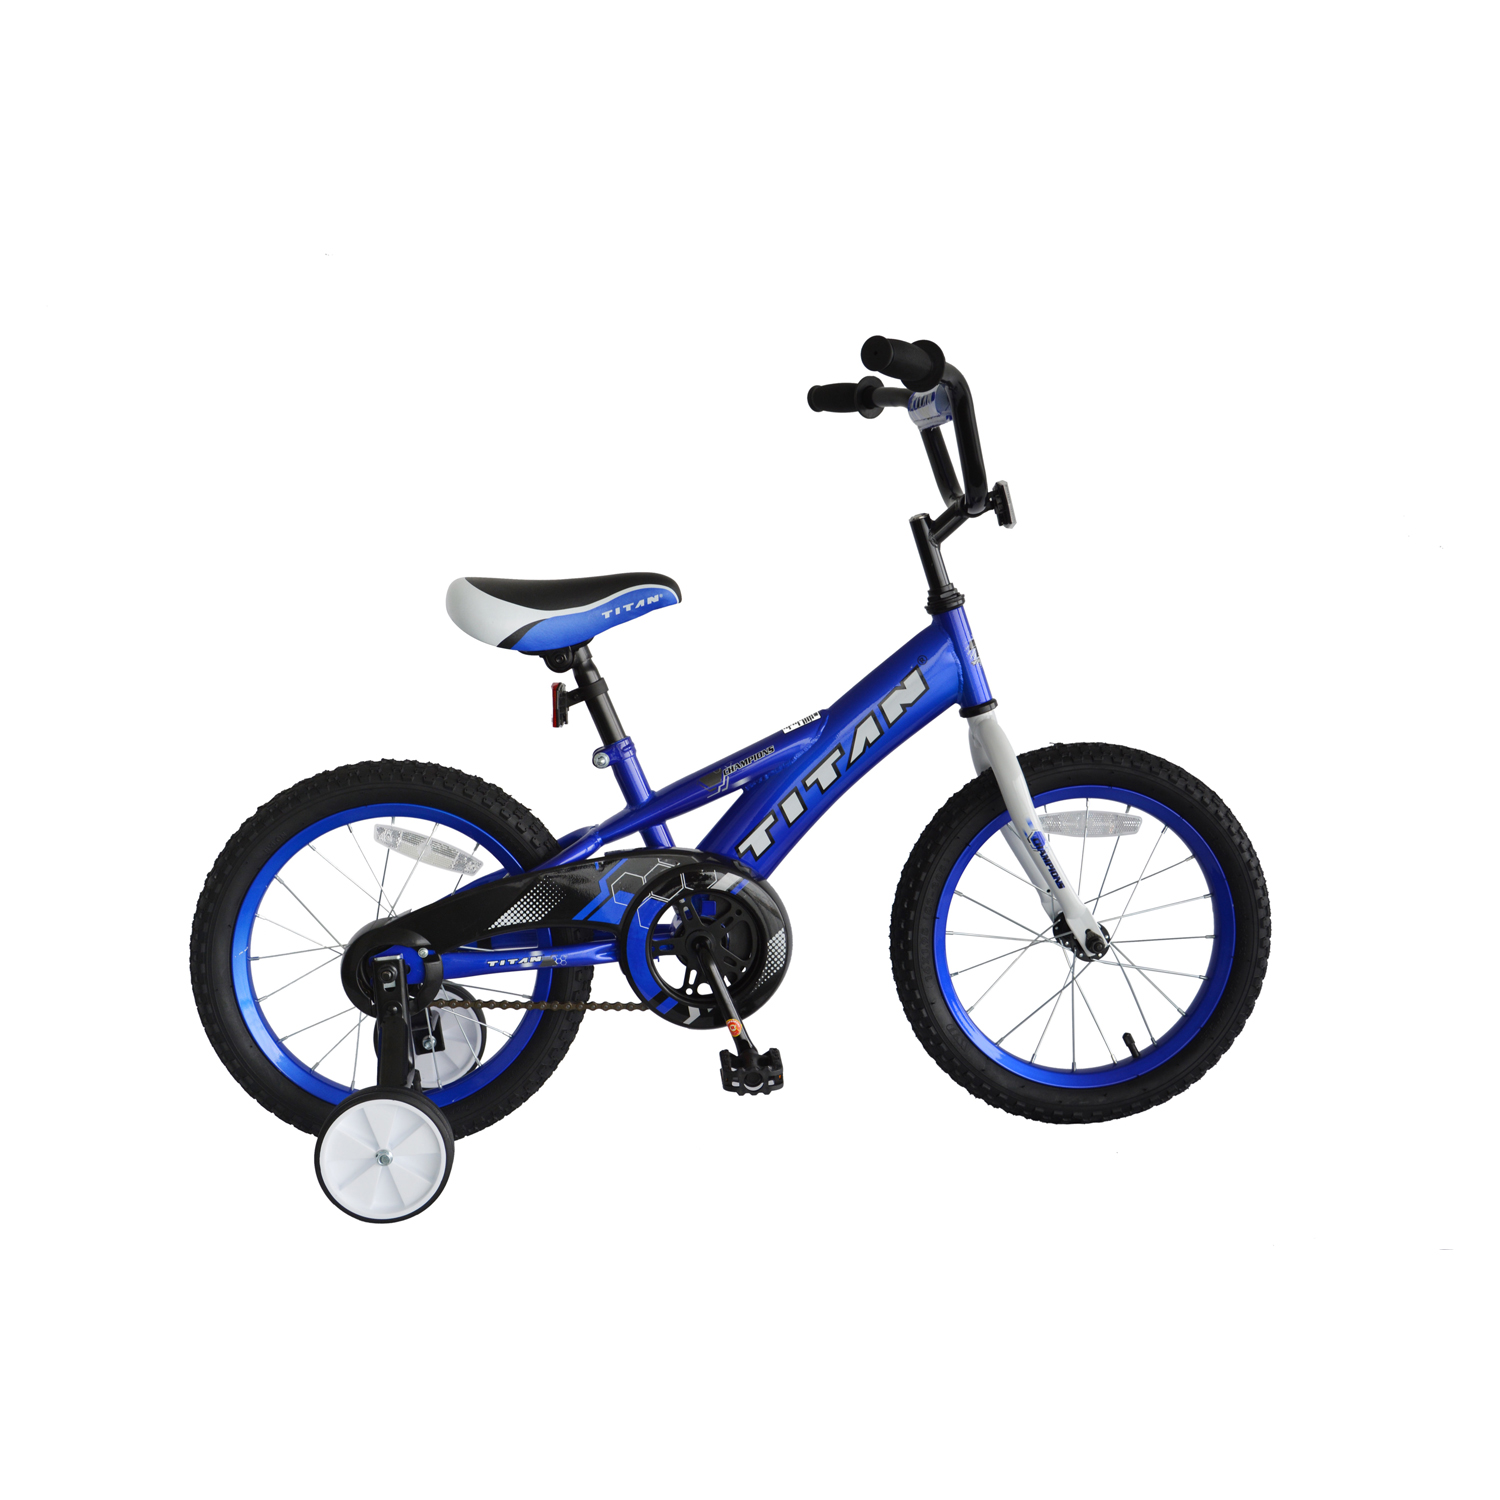 TITAN Champion Boys BMX Bike with Training Wheels, 16-Inch, Blue by Titan